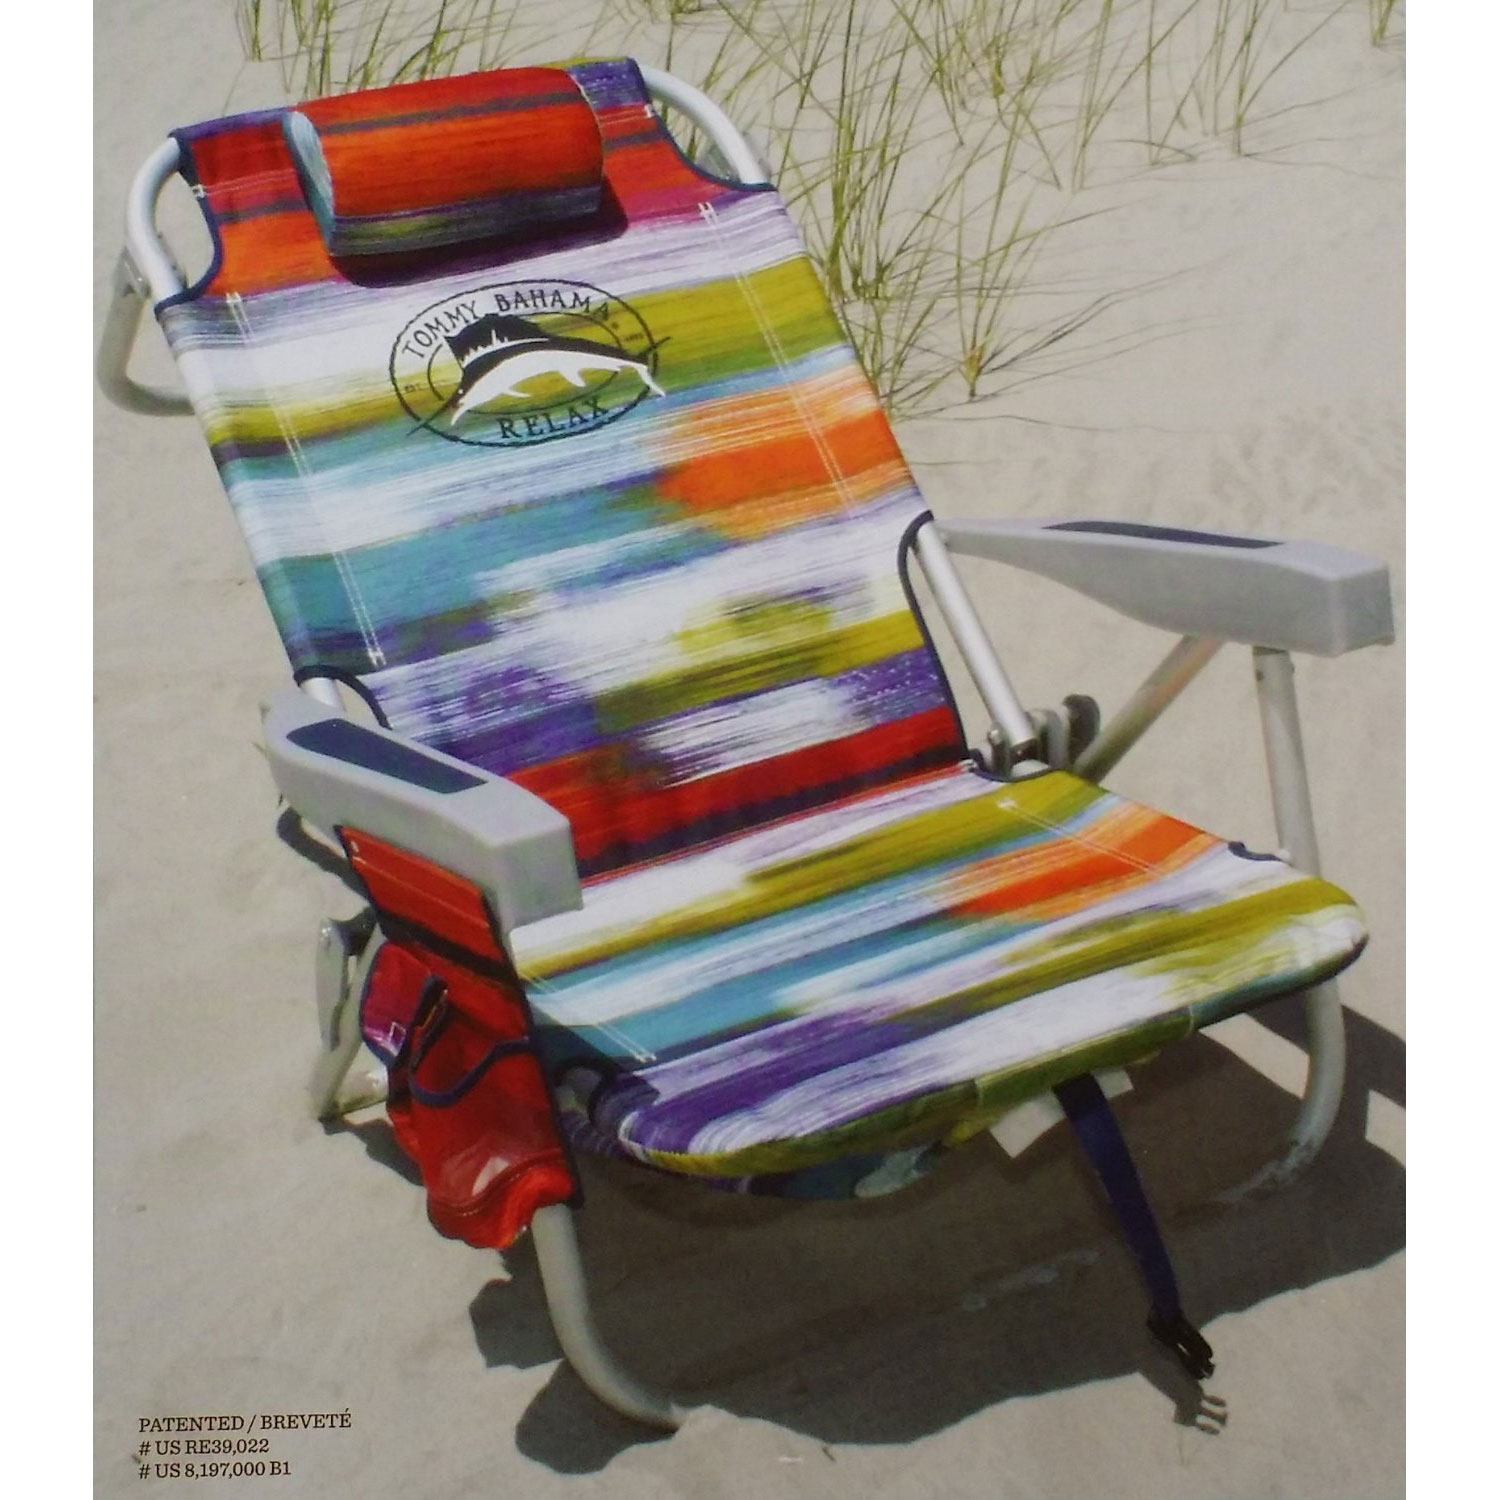 Best Beach Chair Reviews Buying Guide Jan 2021 Outlinist